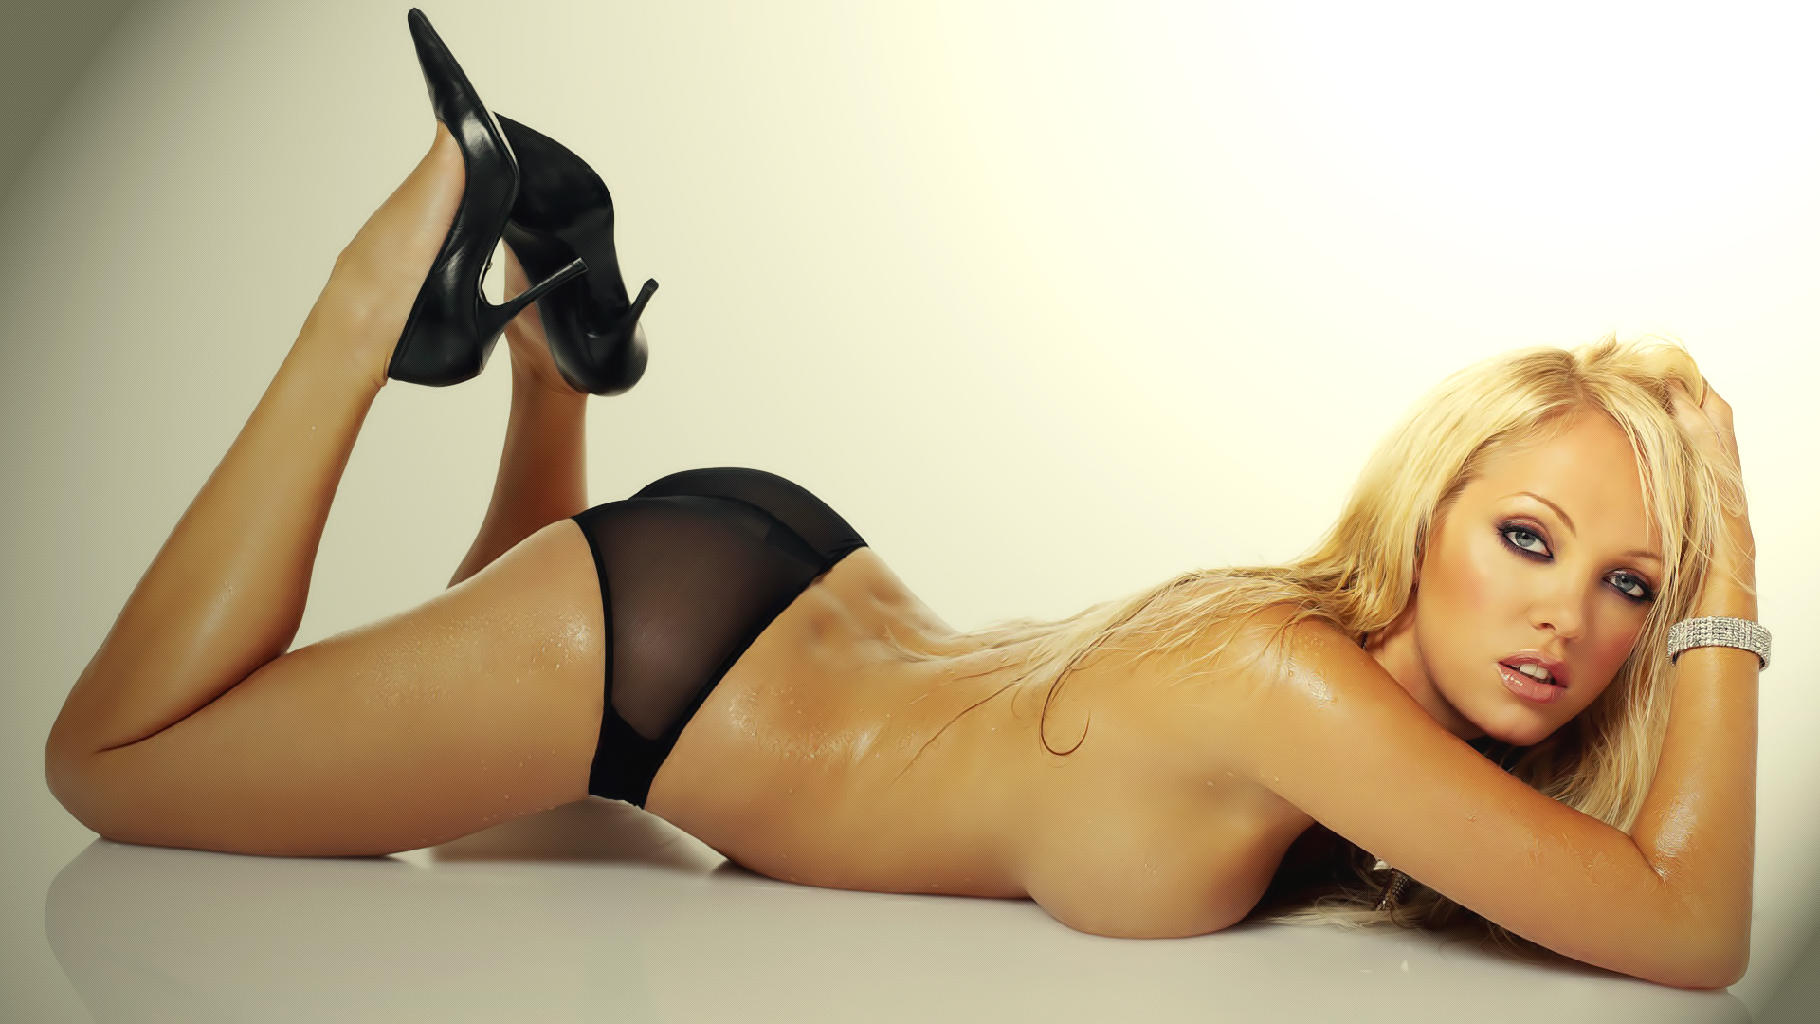 a sexy blonde escort on a bed